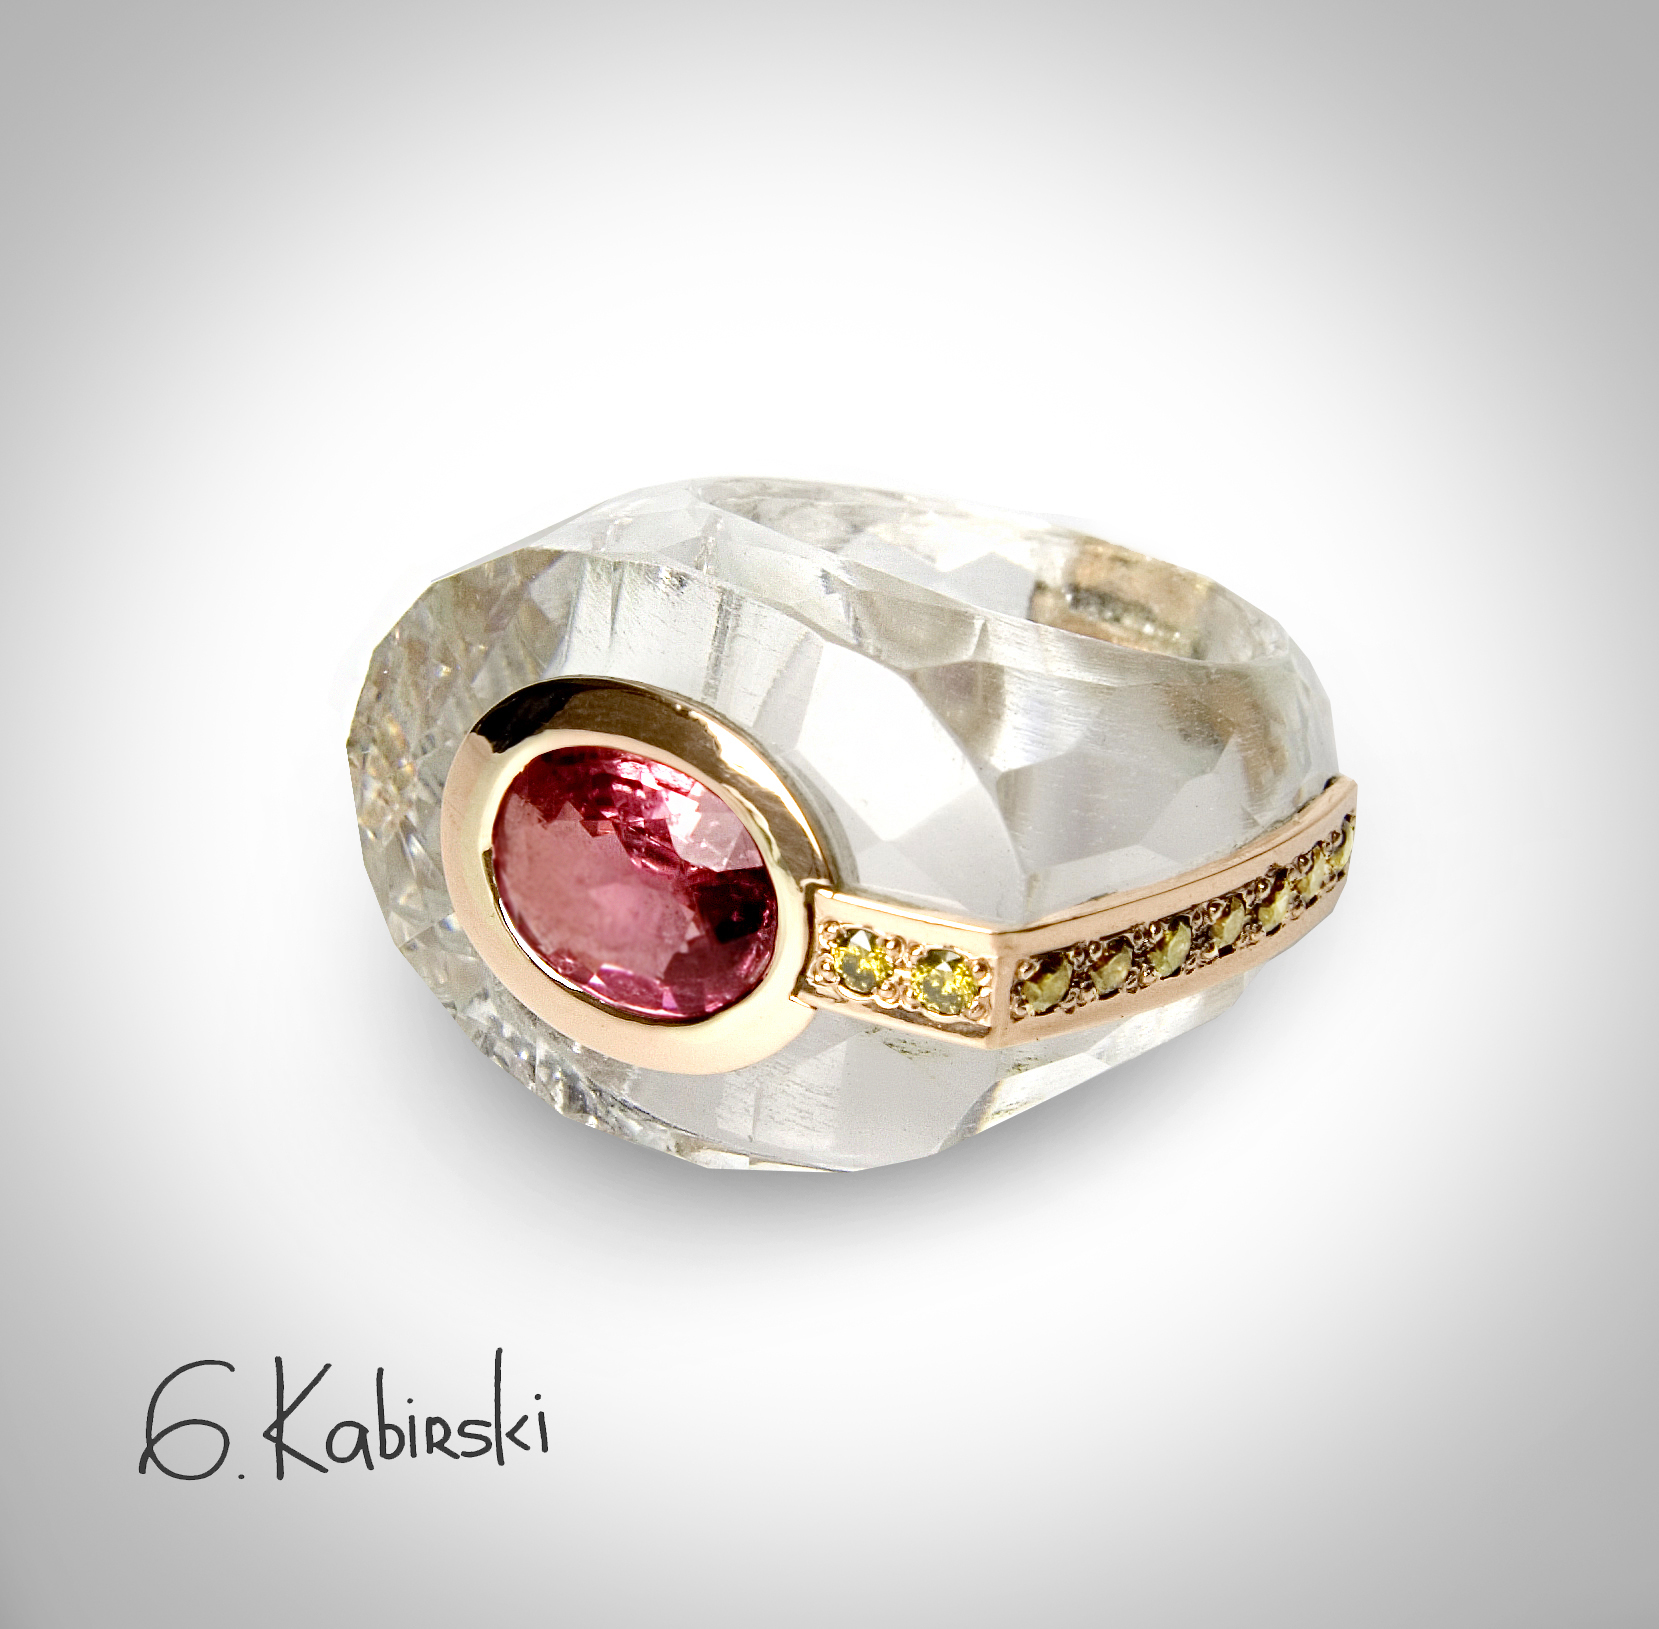 german kabirski jewelry gallery jewelry gallery